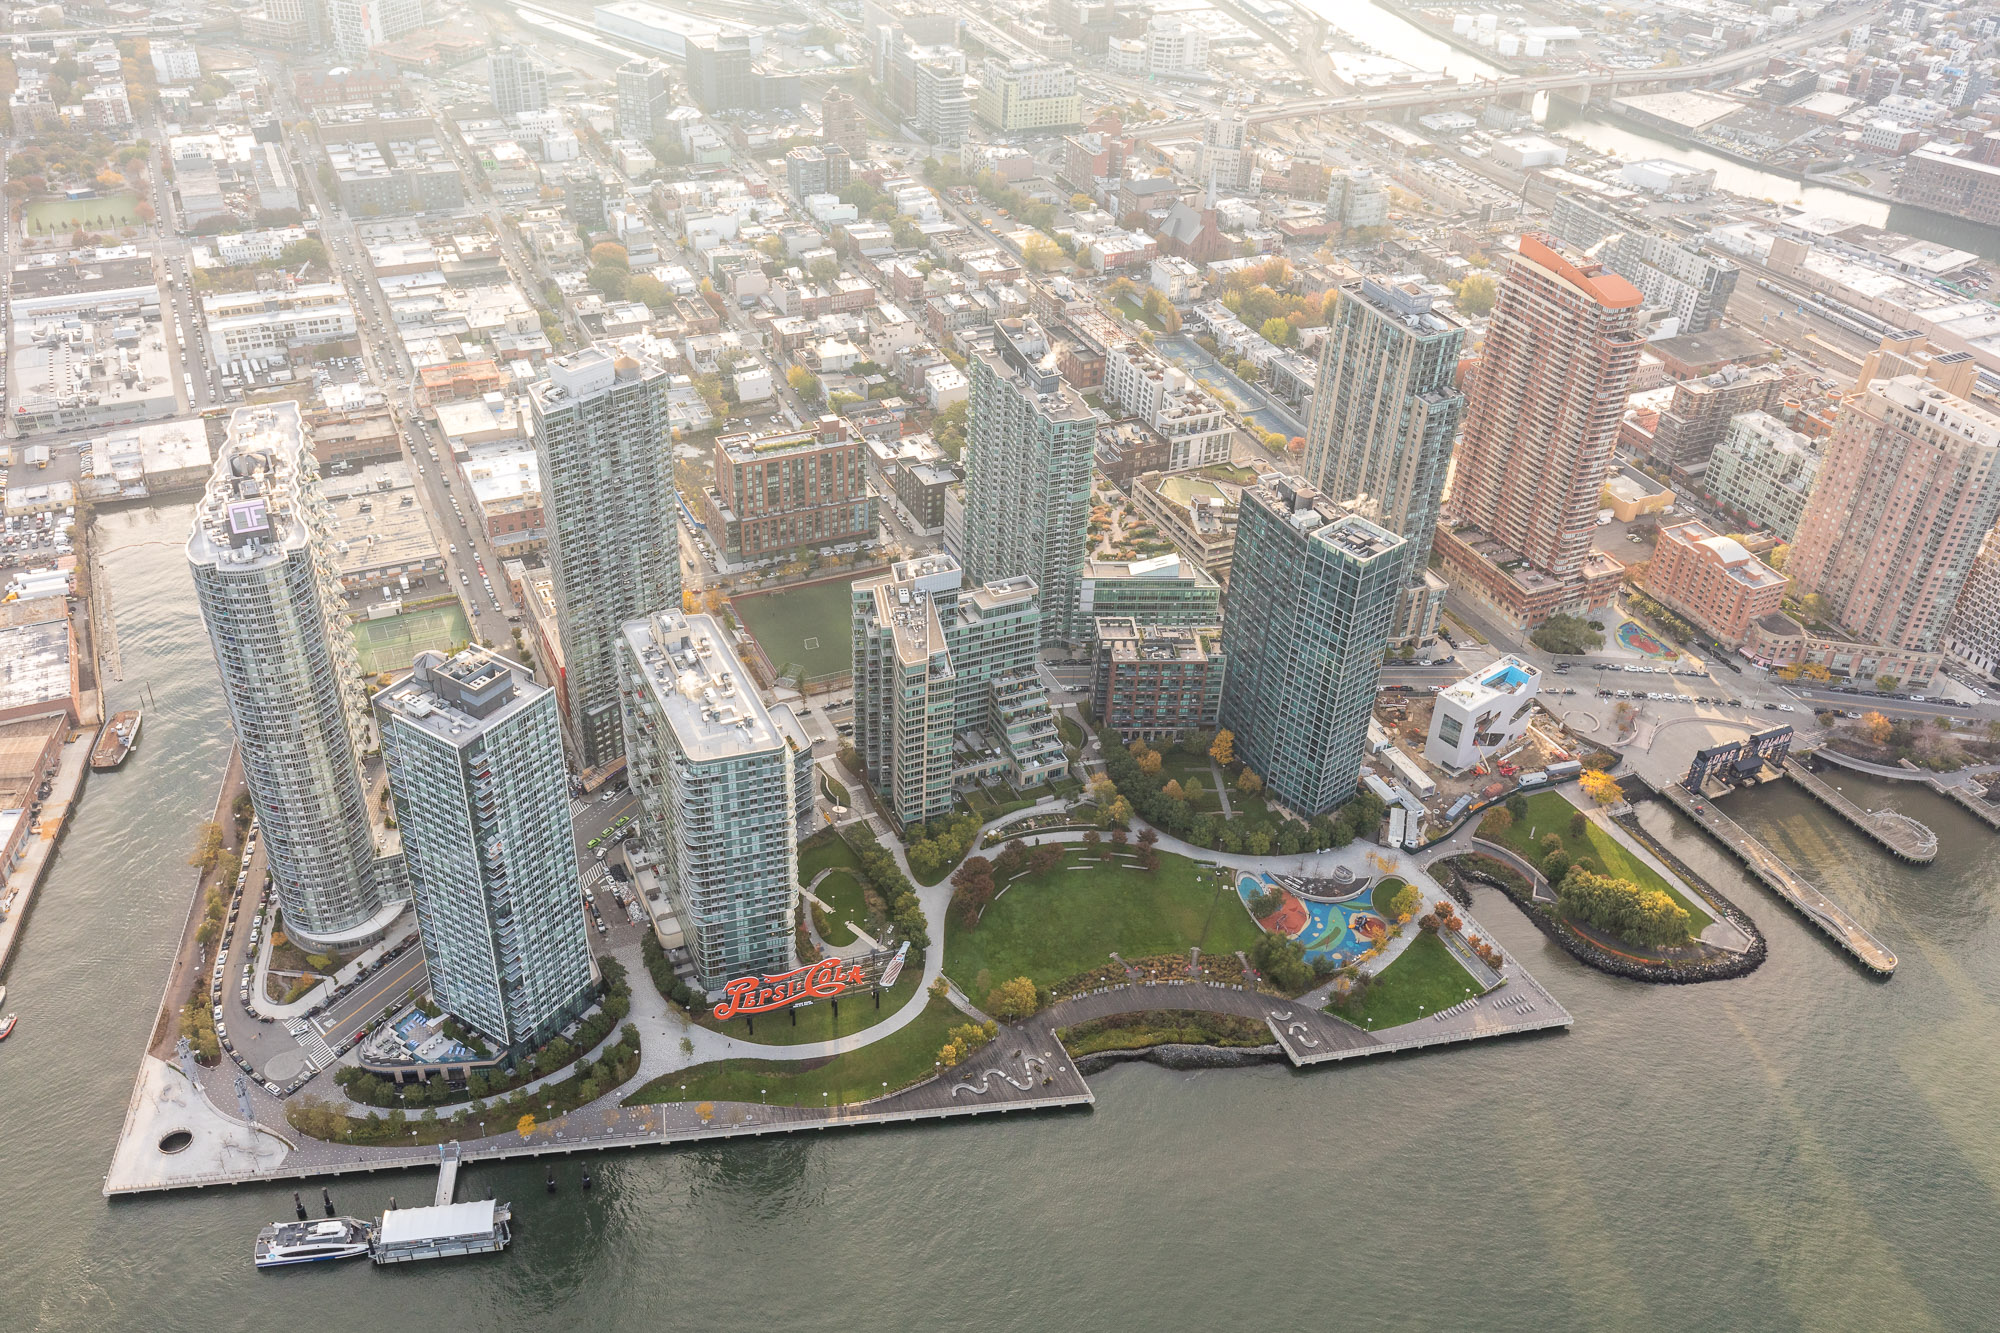 An aerial view of the tall skyscrapers that are on the waterfront in Long Island City, New York City.